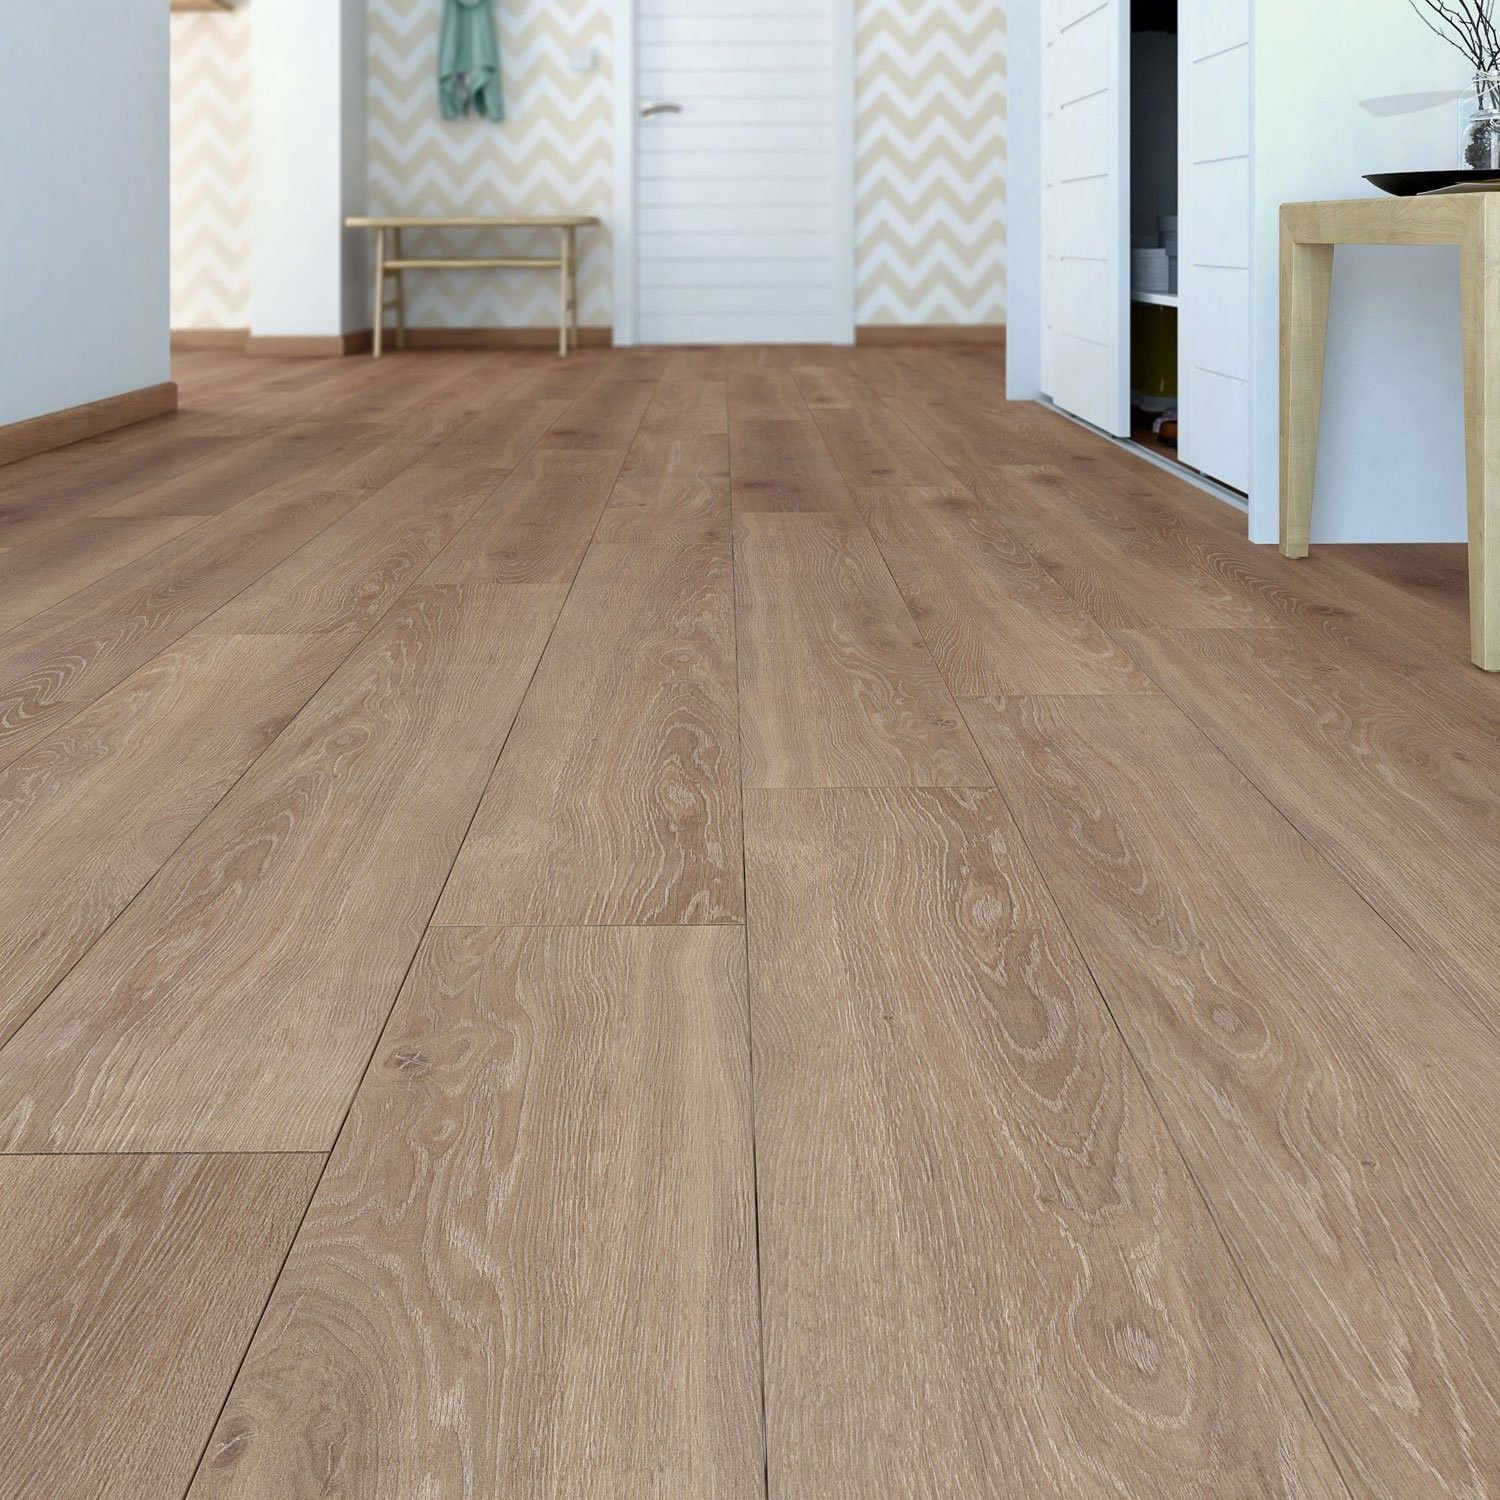 Beautiful Sol Stratifie Castorama Idees De Maison Parquet